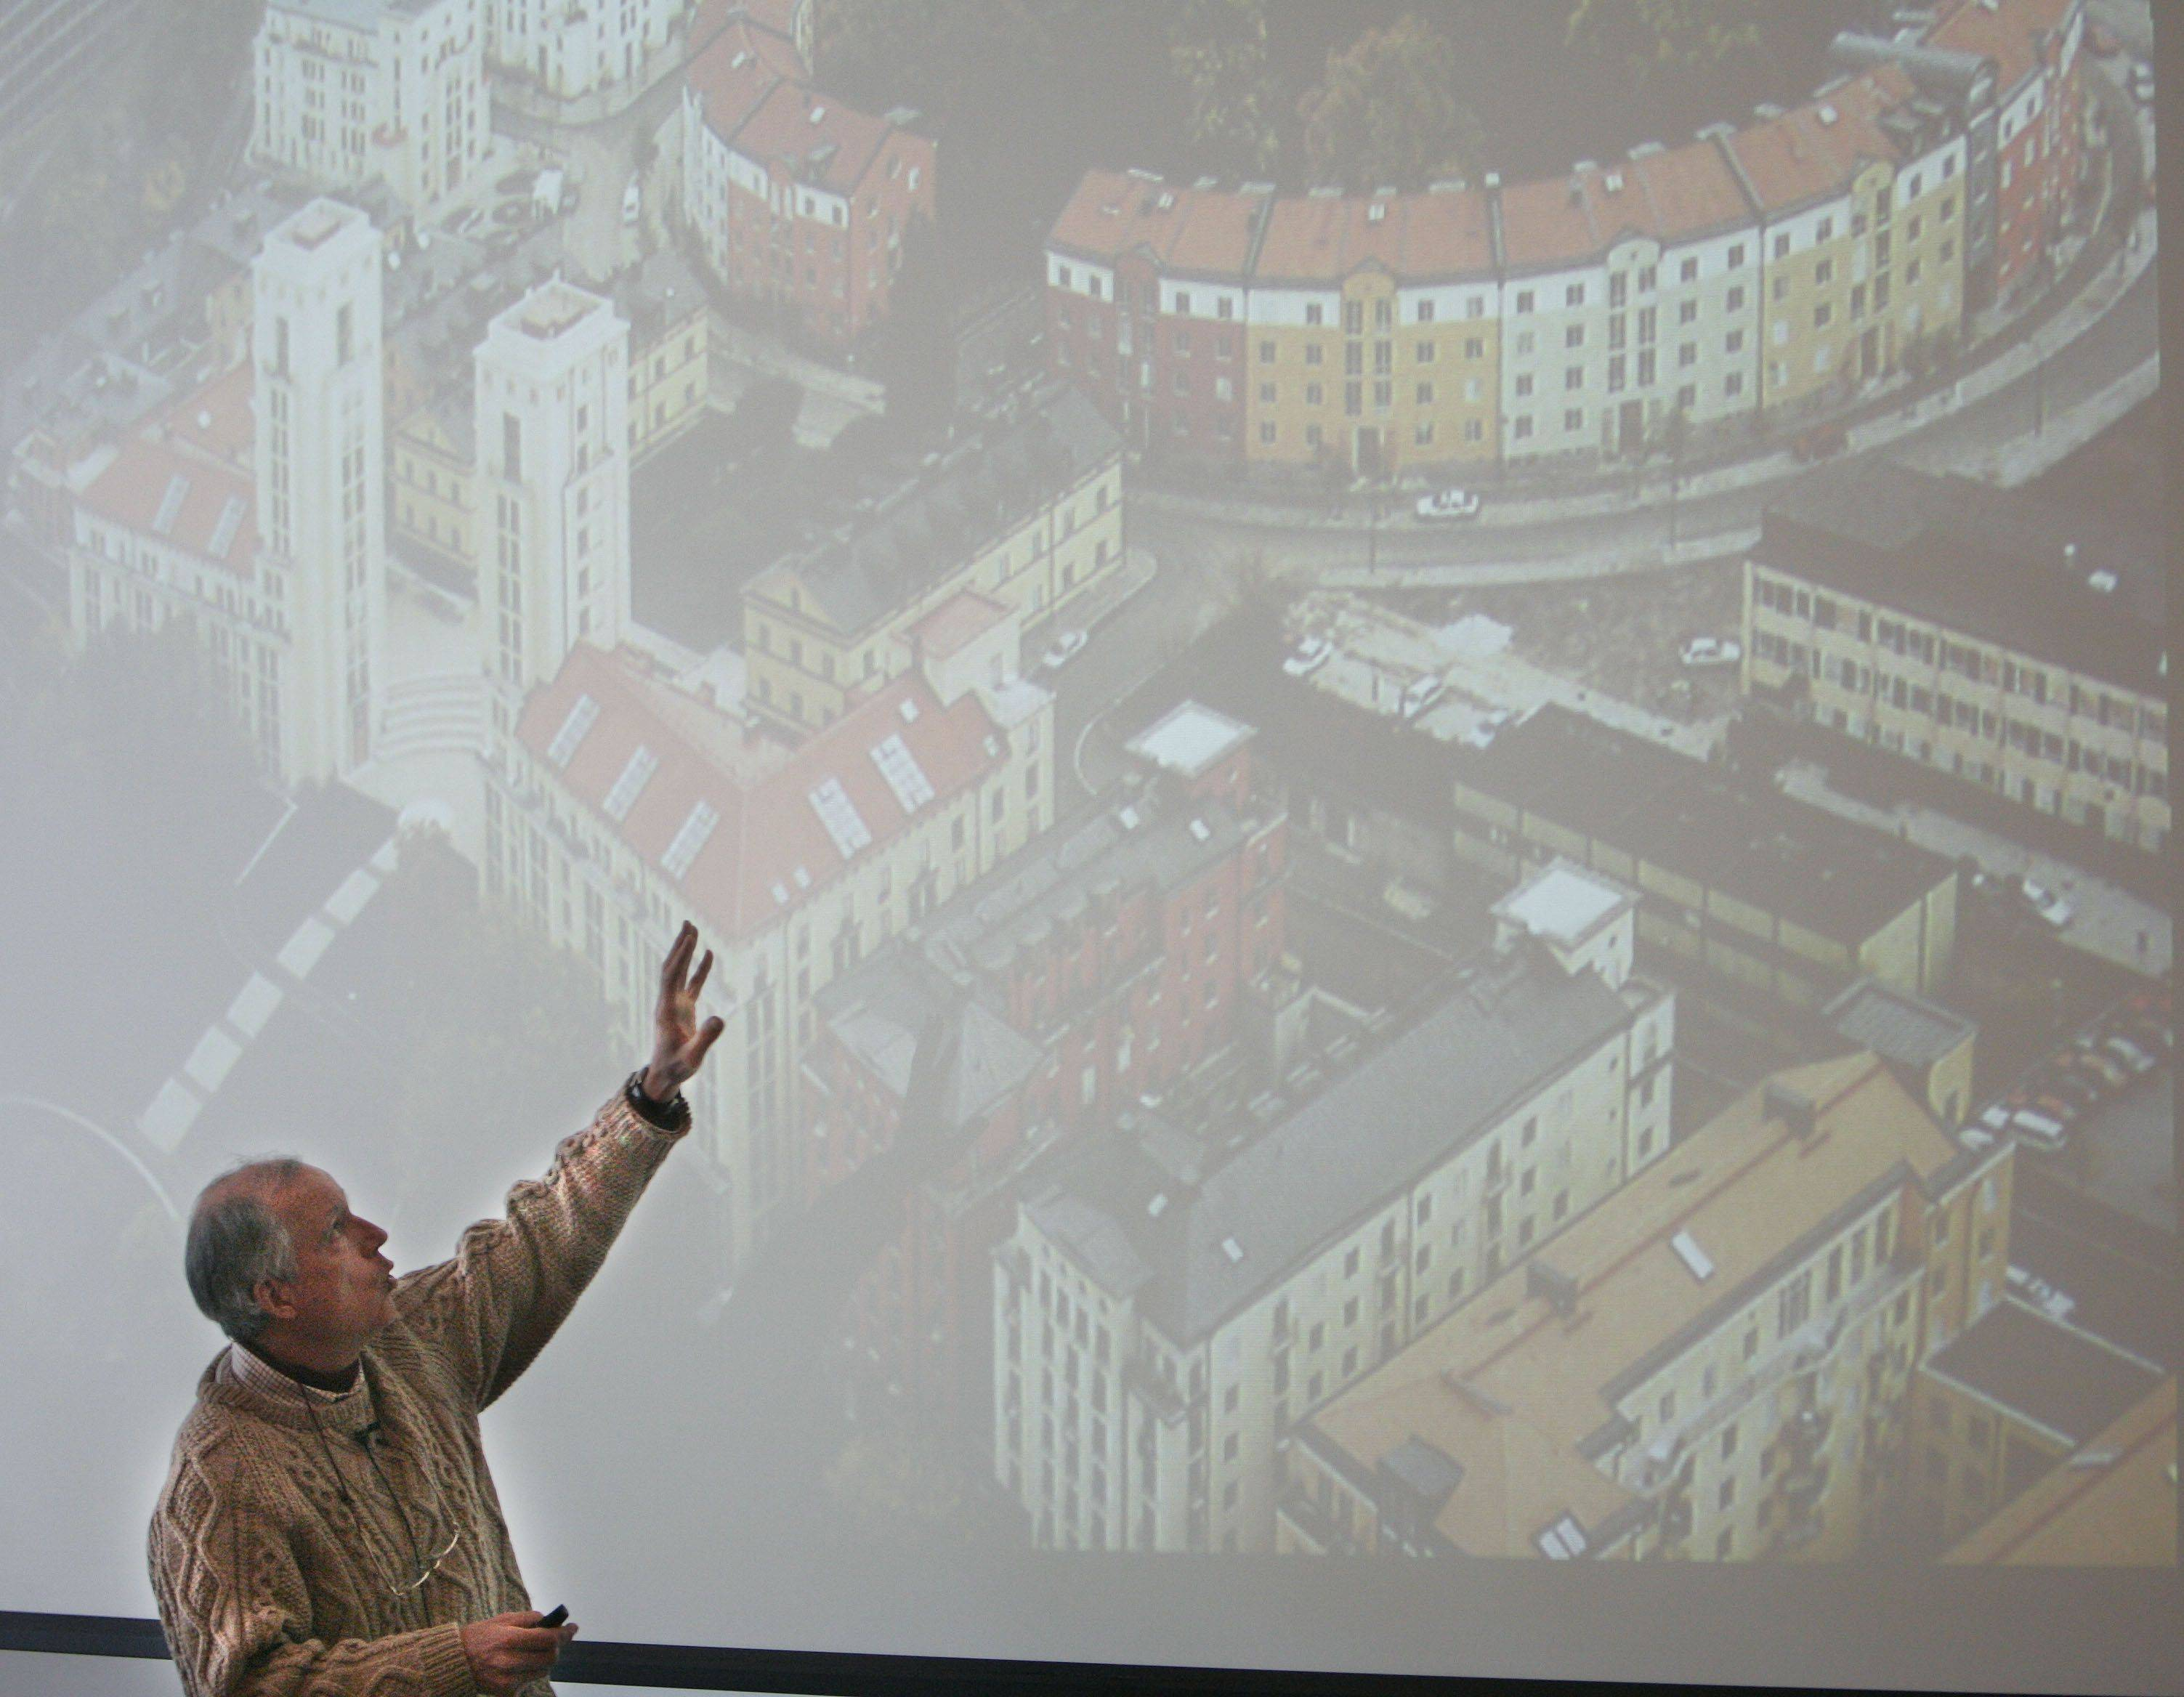 Randall Arendt, a landscape planner and author, addressed conservation issues in his speech for GreenTown 2011, a one-day conference on sustainability in Elgin Thursday.